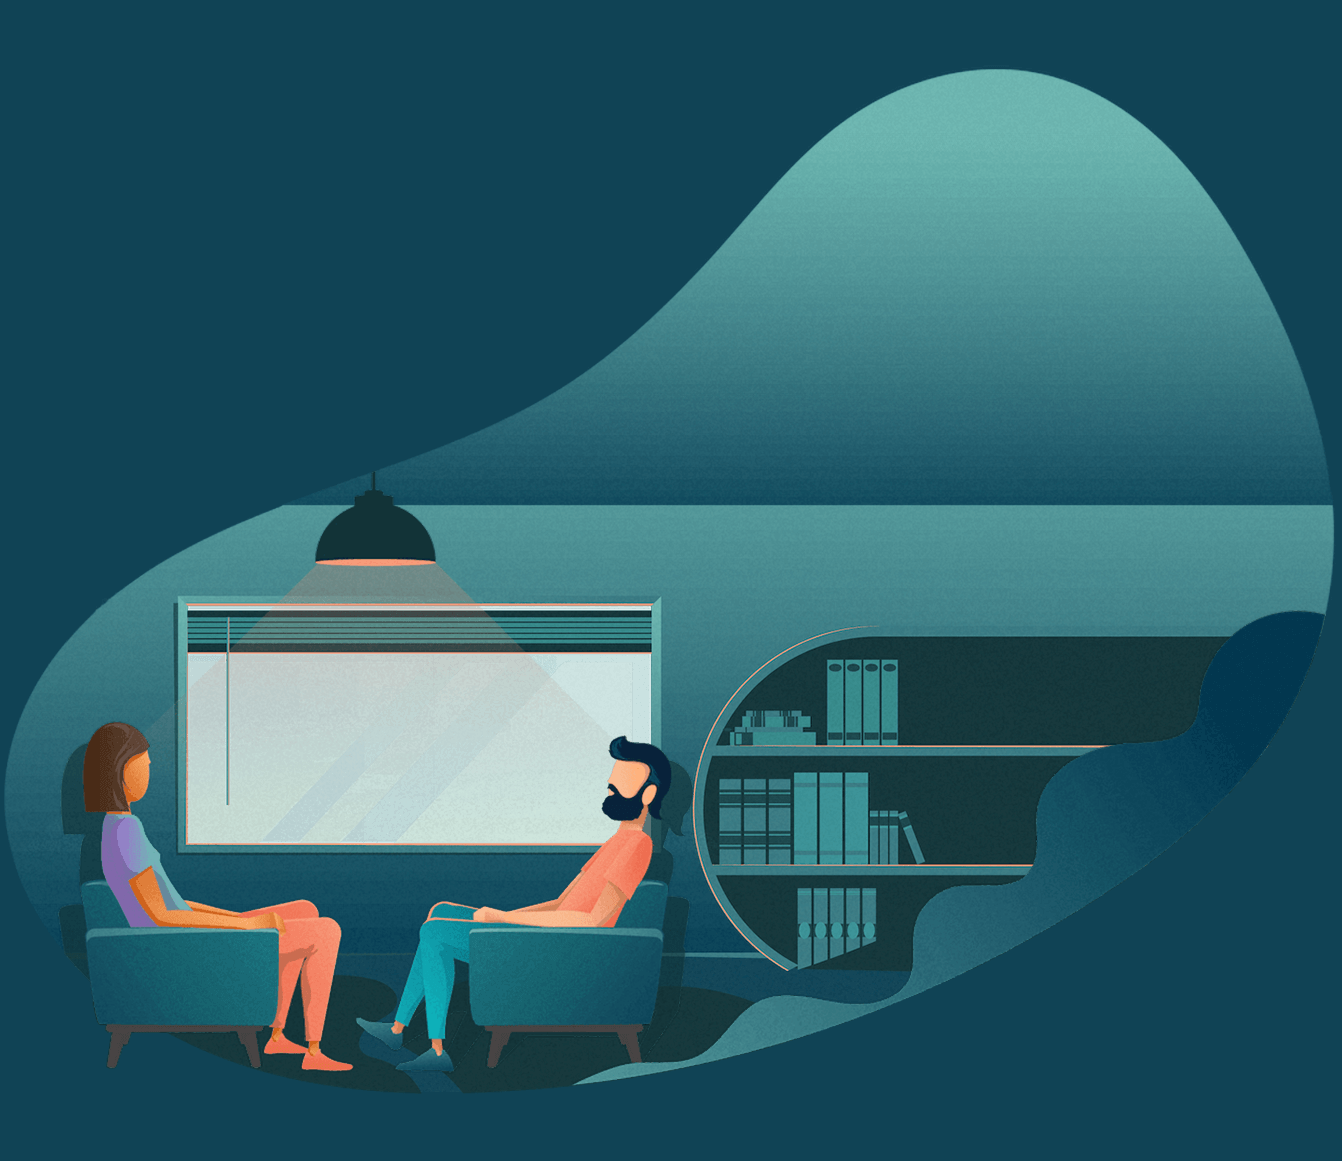 person having therapy session with counselor